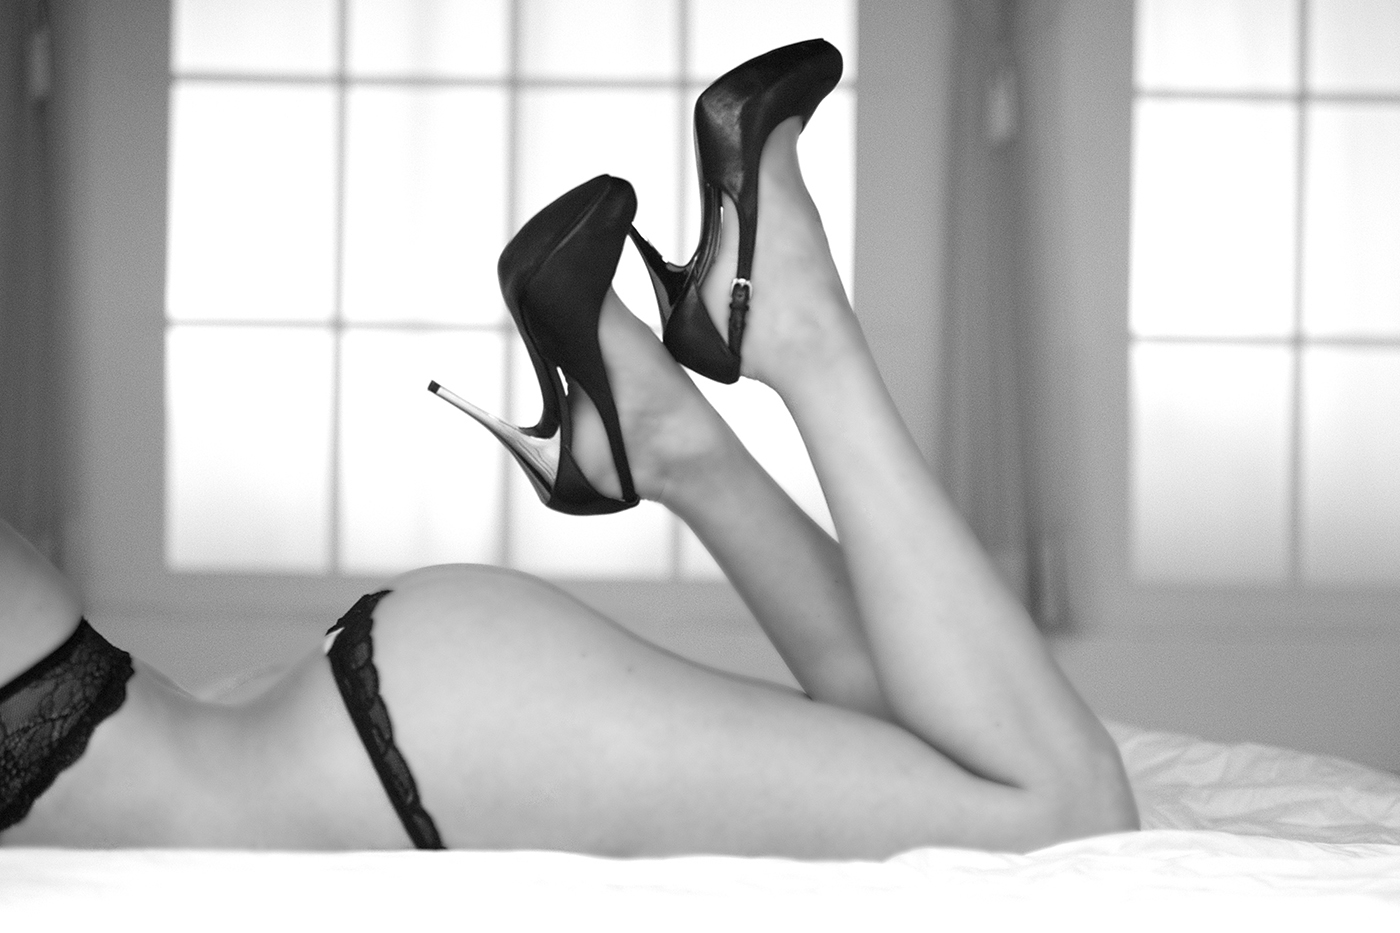 #yeg #boudoir #boudior #photography #photographer #photo #picture #boudoirpicture